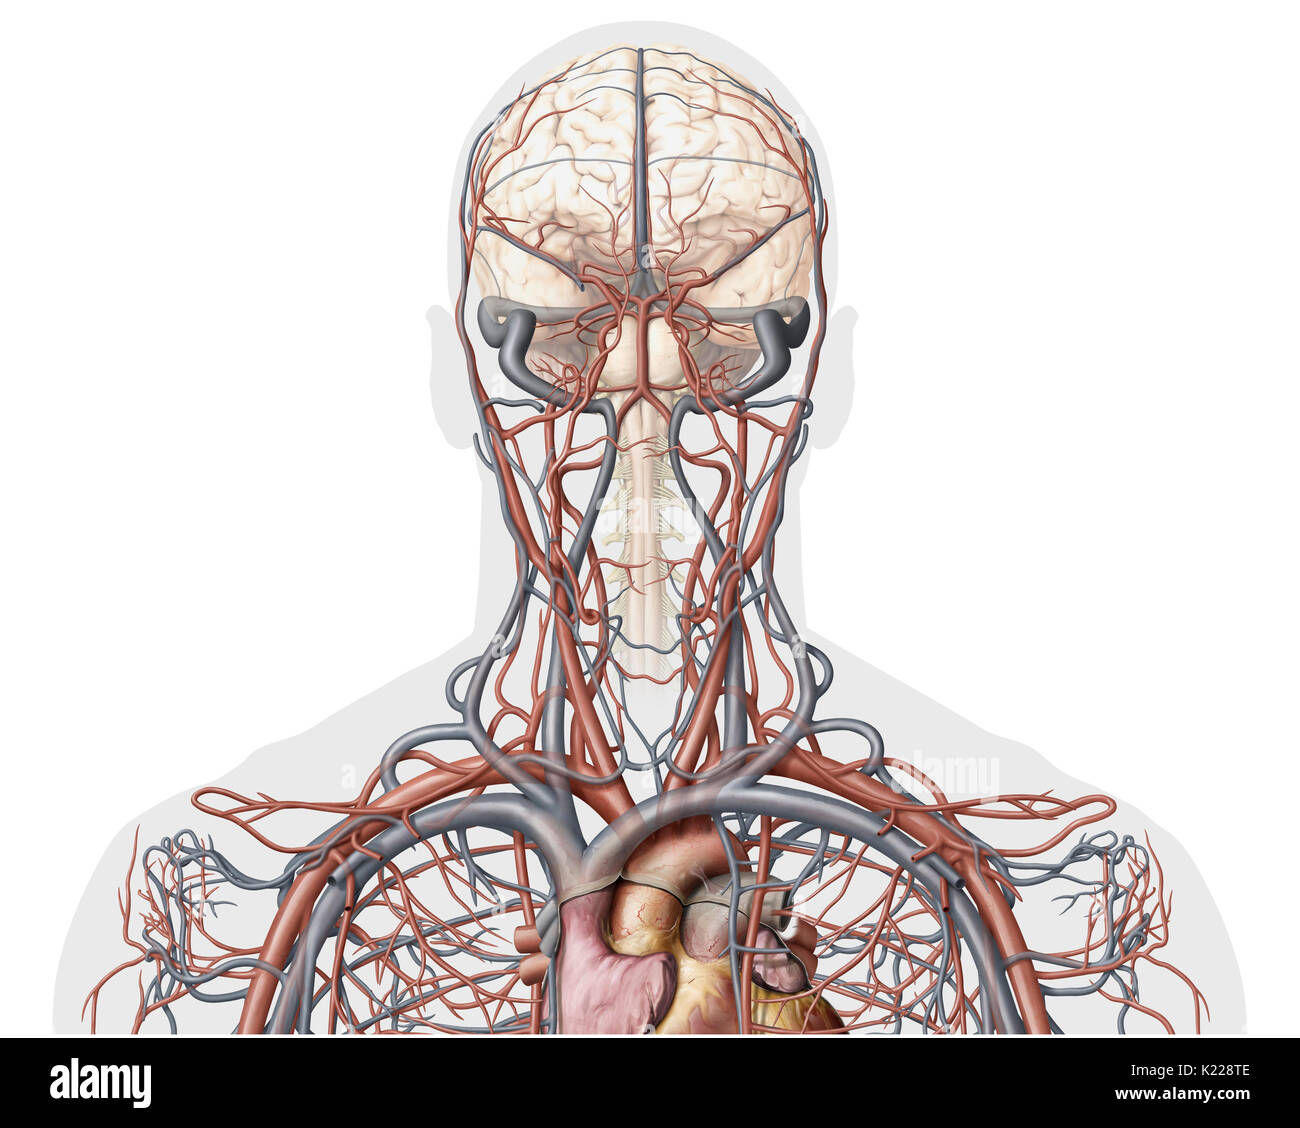 This image shows an anterior view of the veins and arteries of the head. - Stock Image